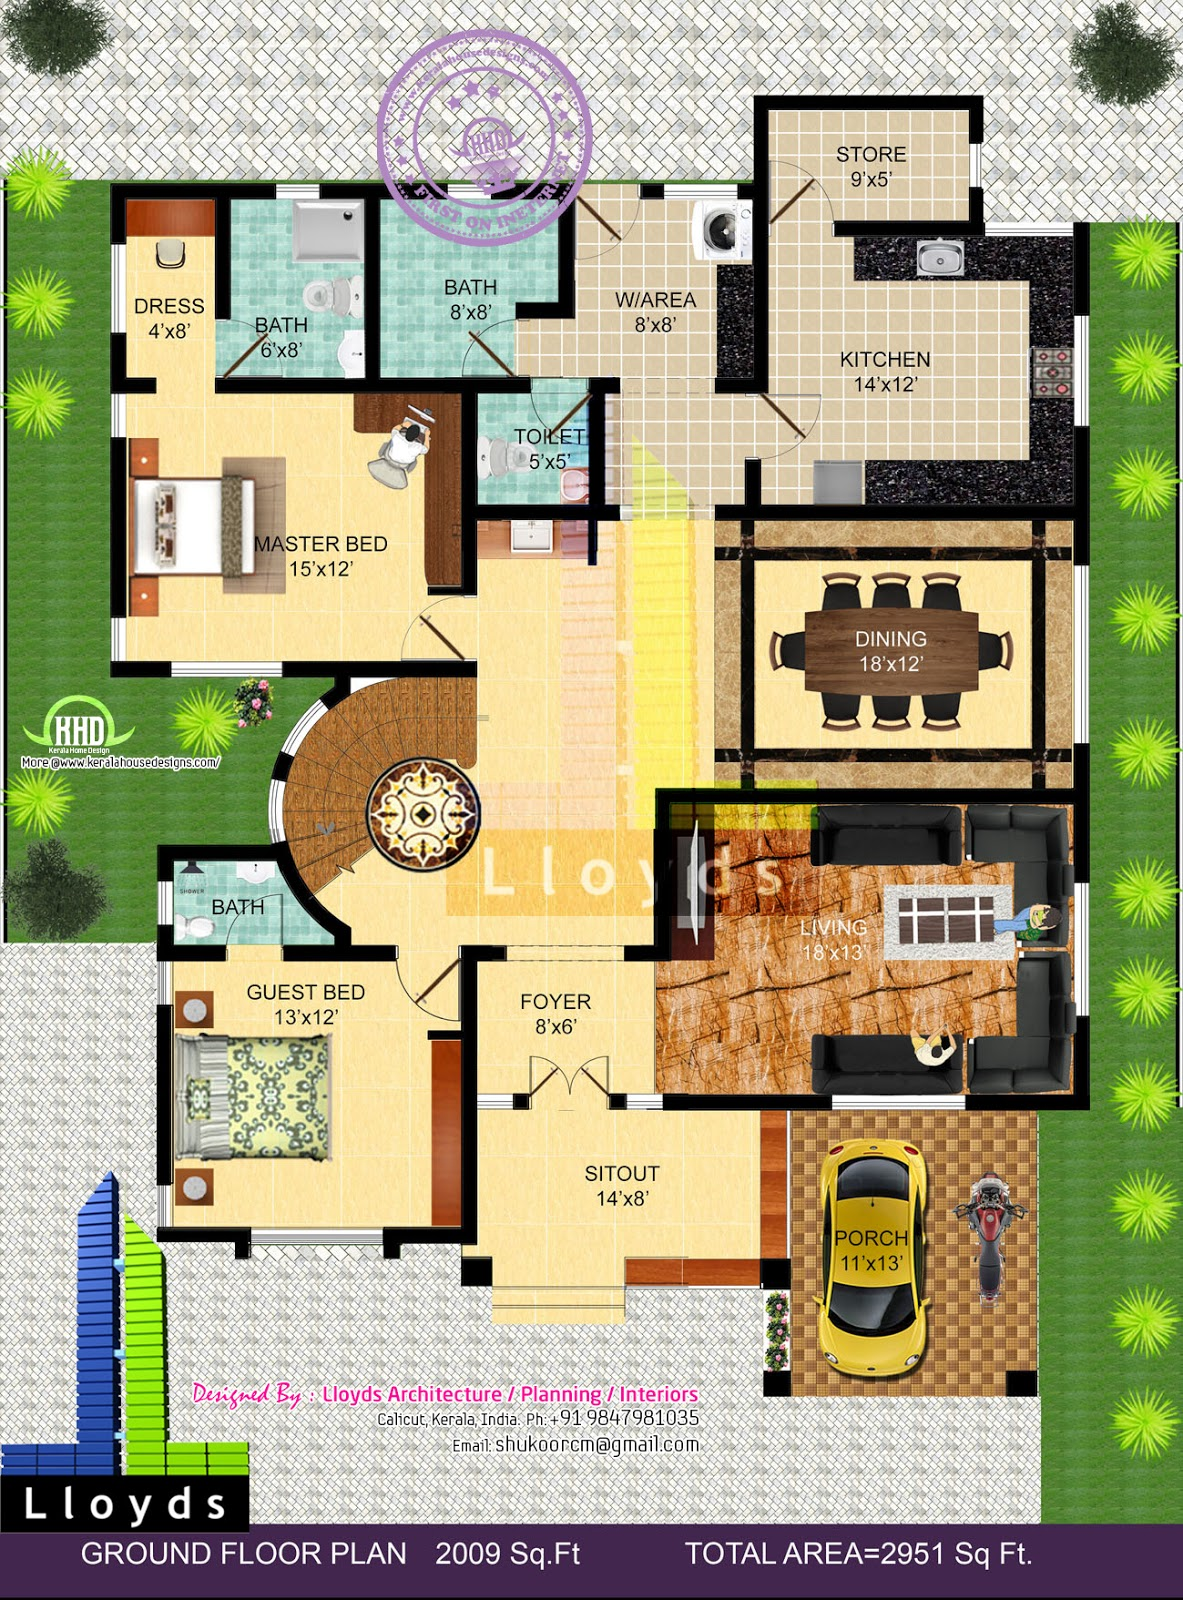 4Bedroom Bungalow Floor Plan